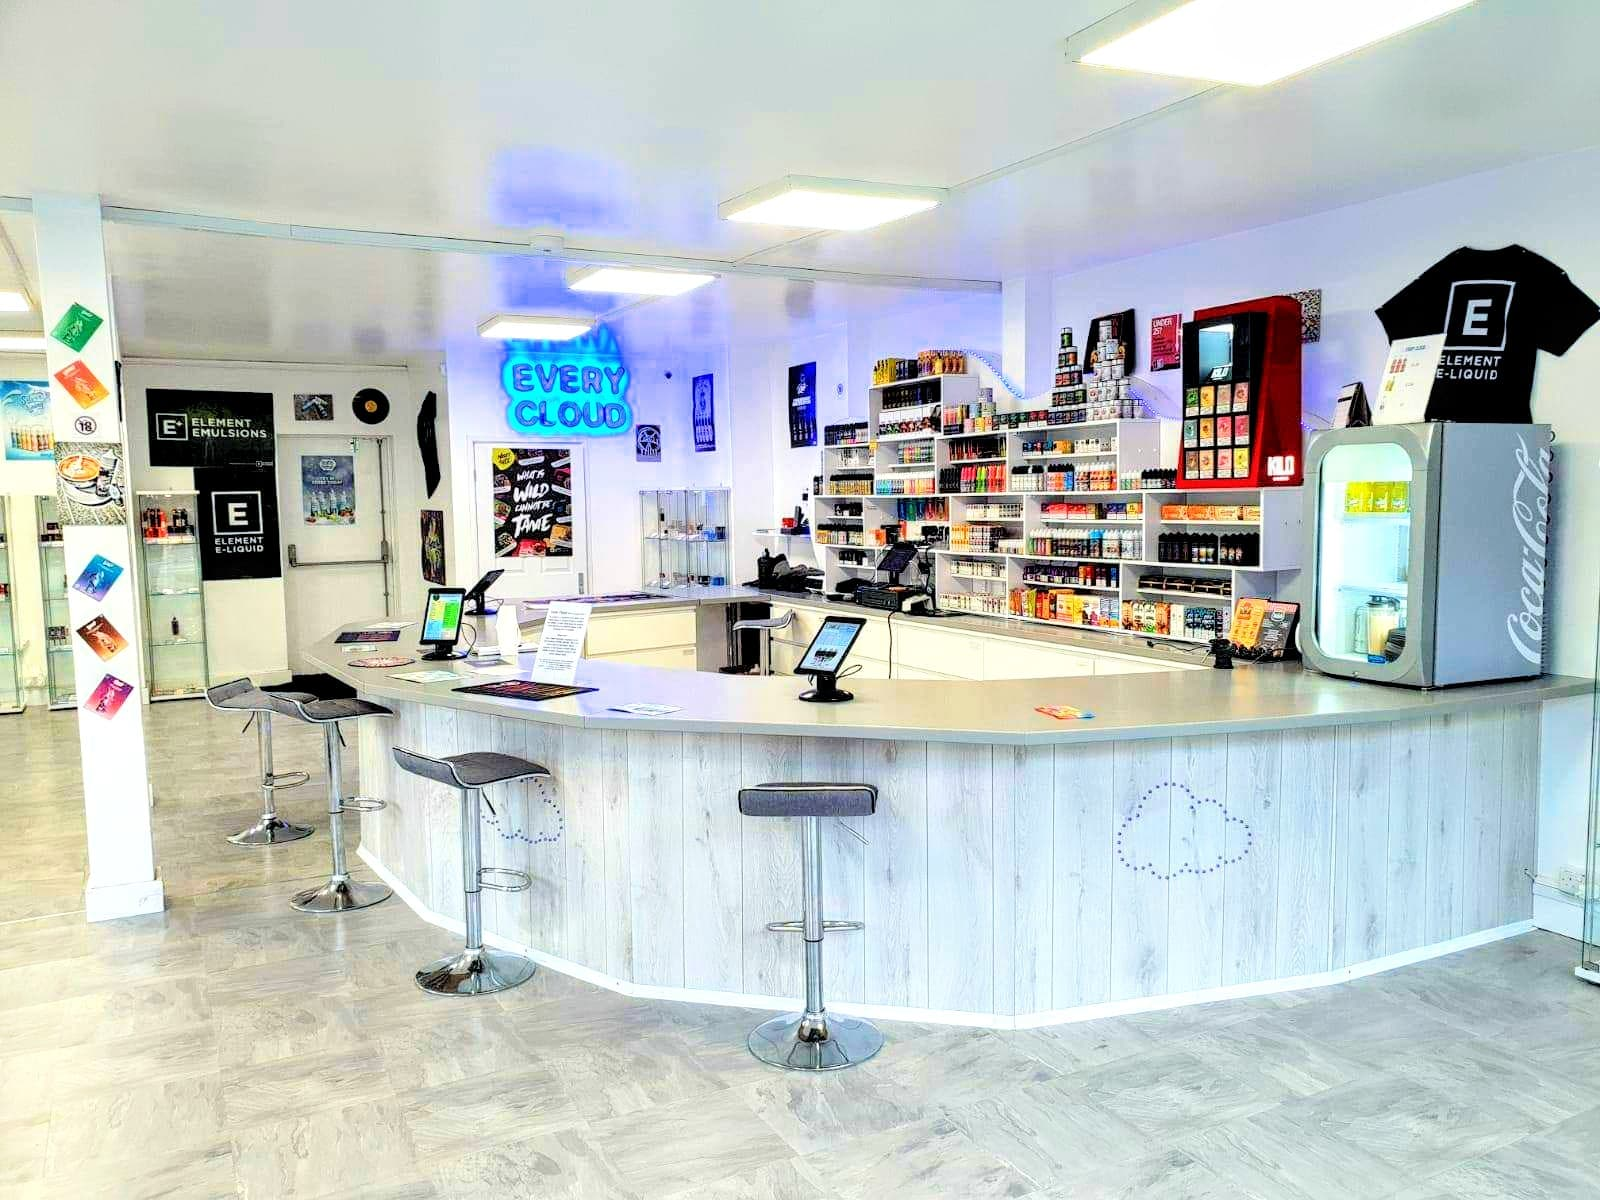 Every Cloud Vape Shop | E-liquids, Vaping Equipment and